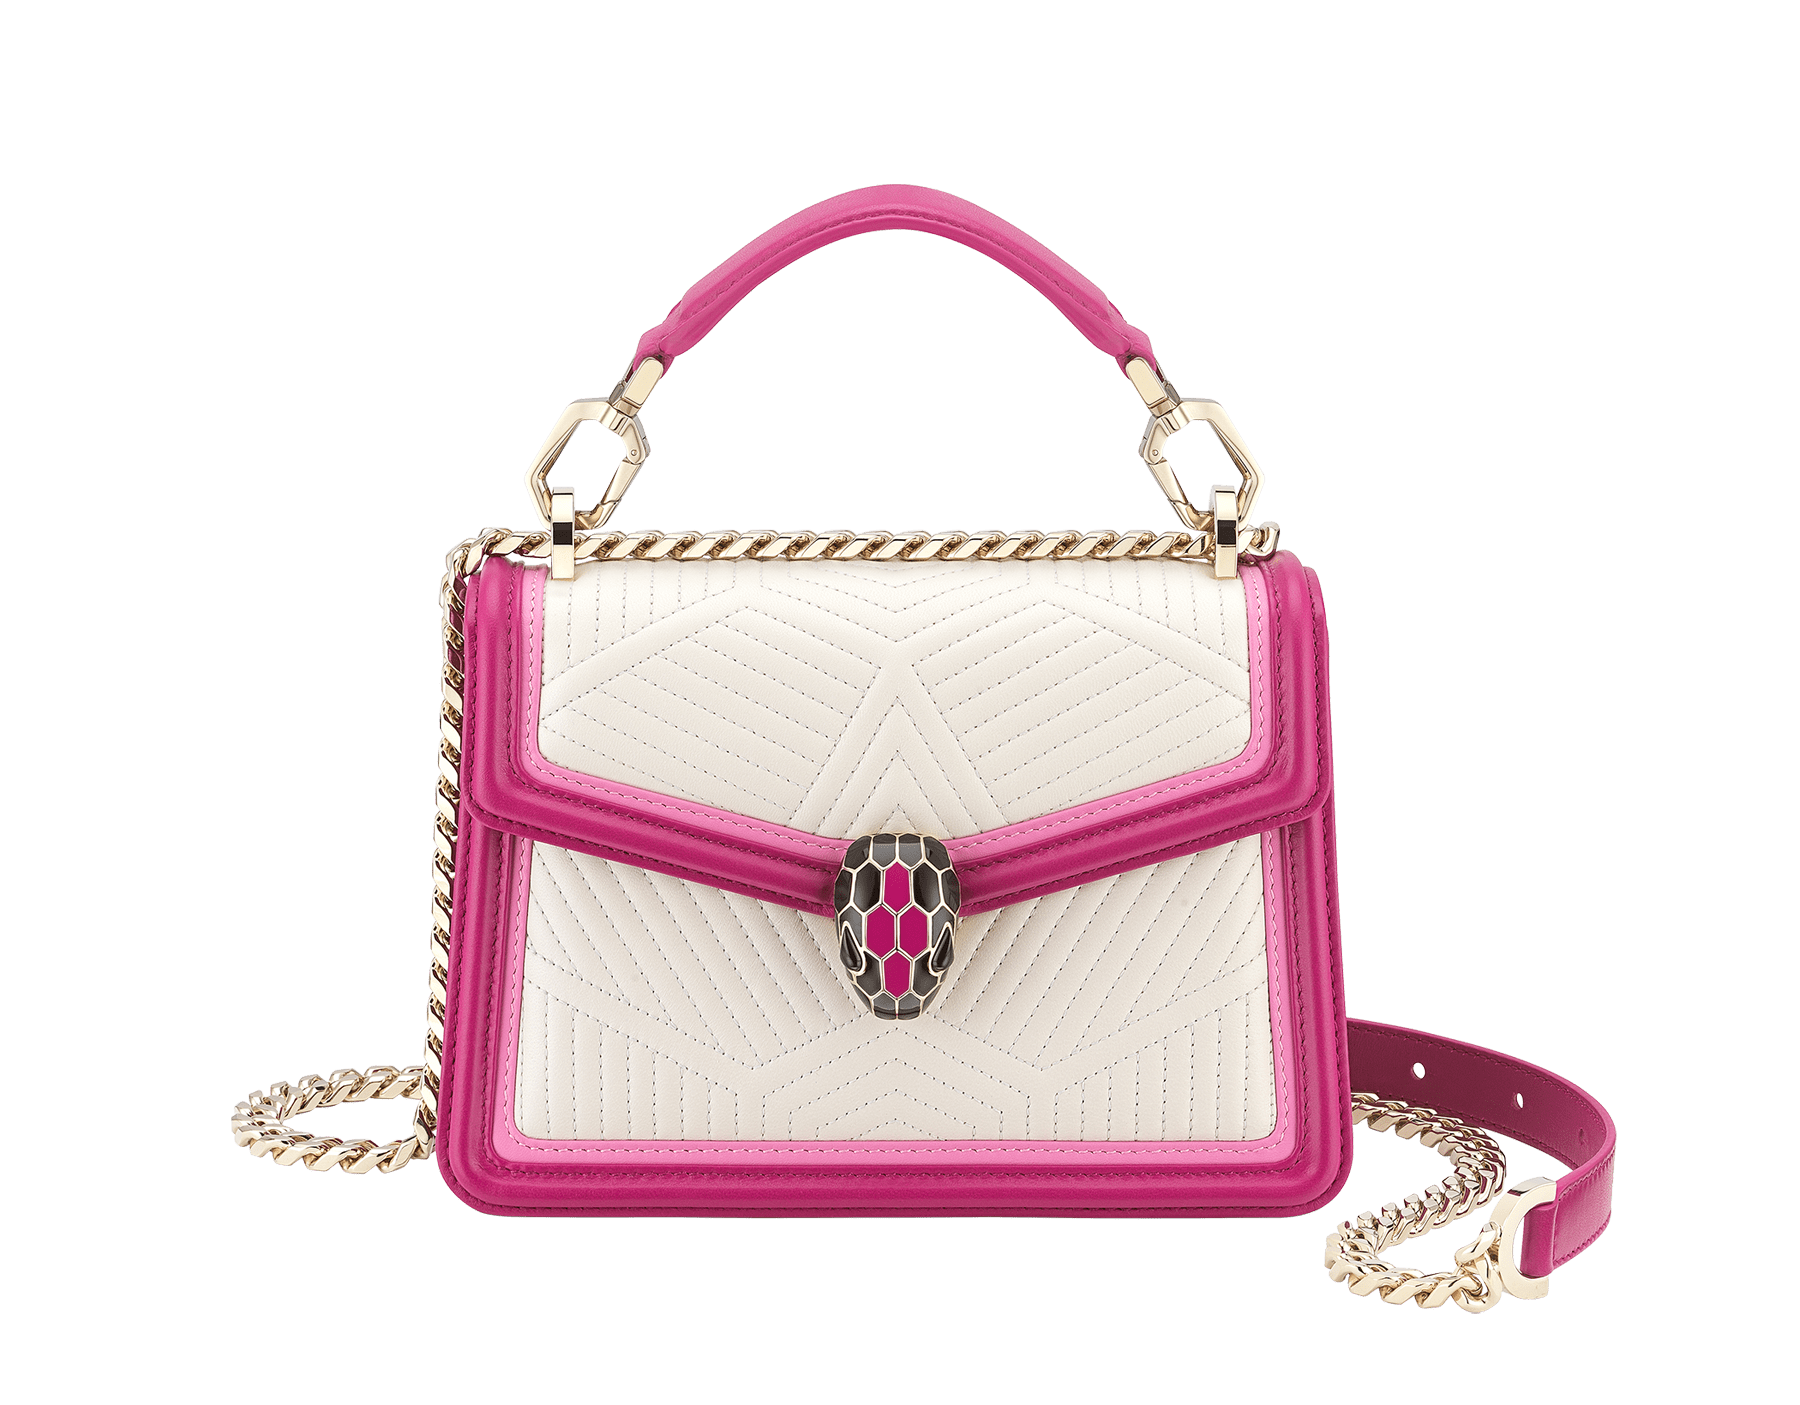 """Serpenti Diamond Blast"" top handle bag in white agate quilted nappa leather and berry tourmaline smooth calf leather frames. Iconic snakehead closure in light gold-plated brass enhanced with matte black and shiny berry tourmaline enamel and black onyx eyes. 289943 image 1"